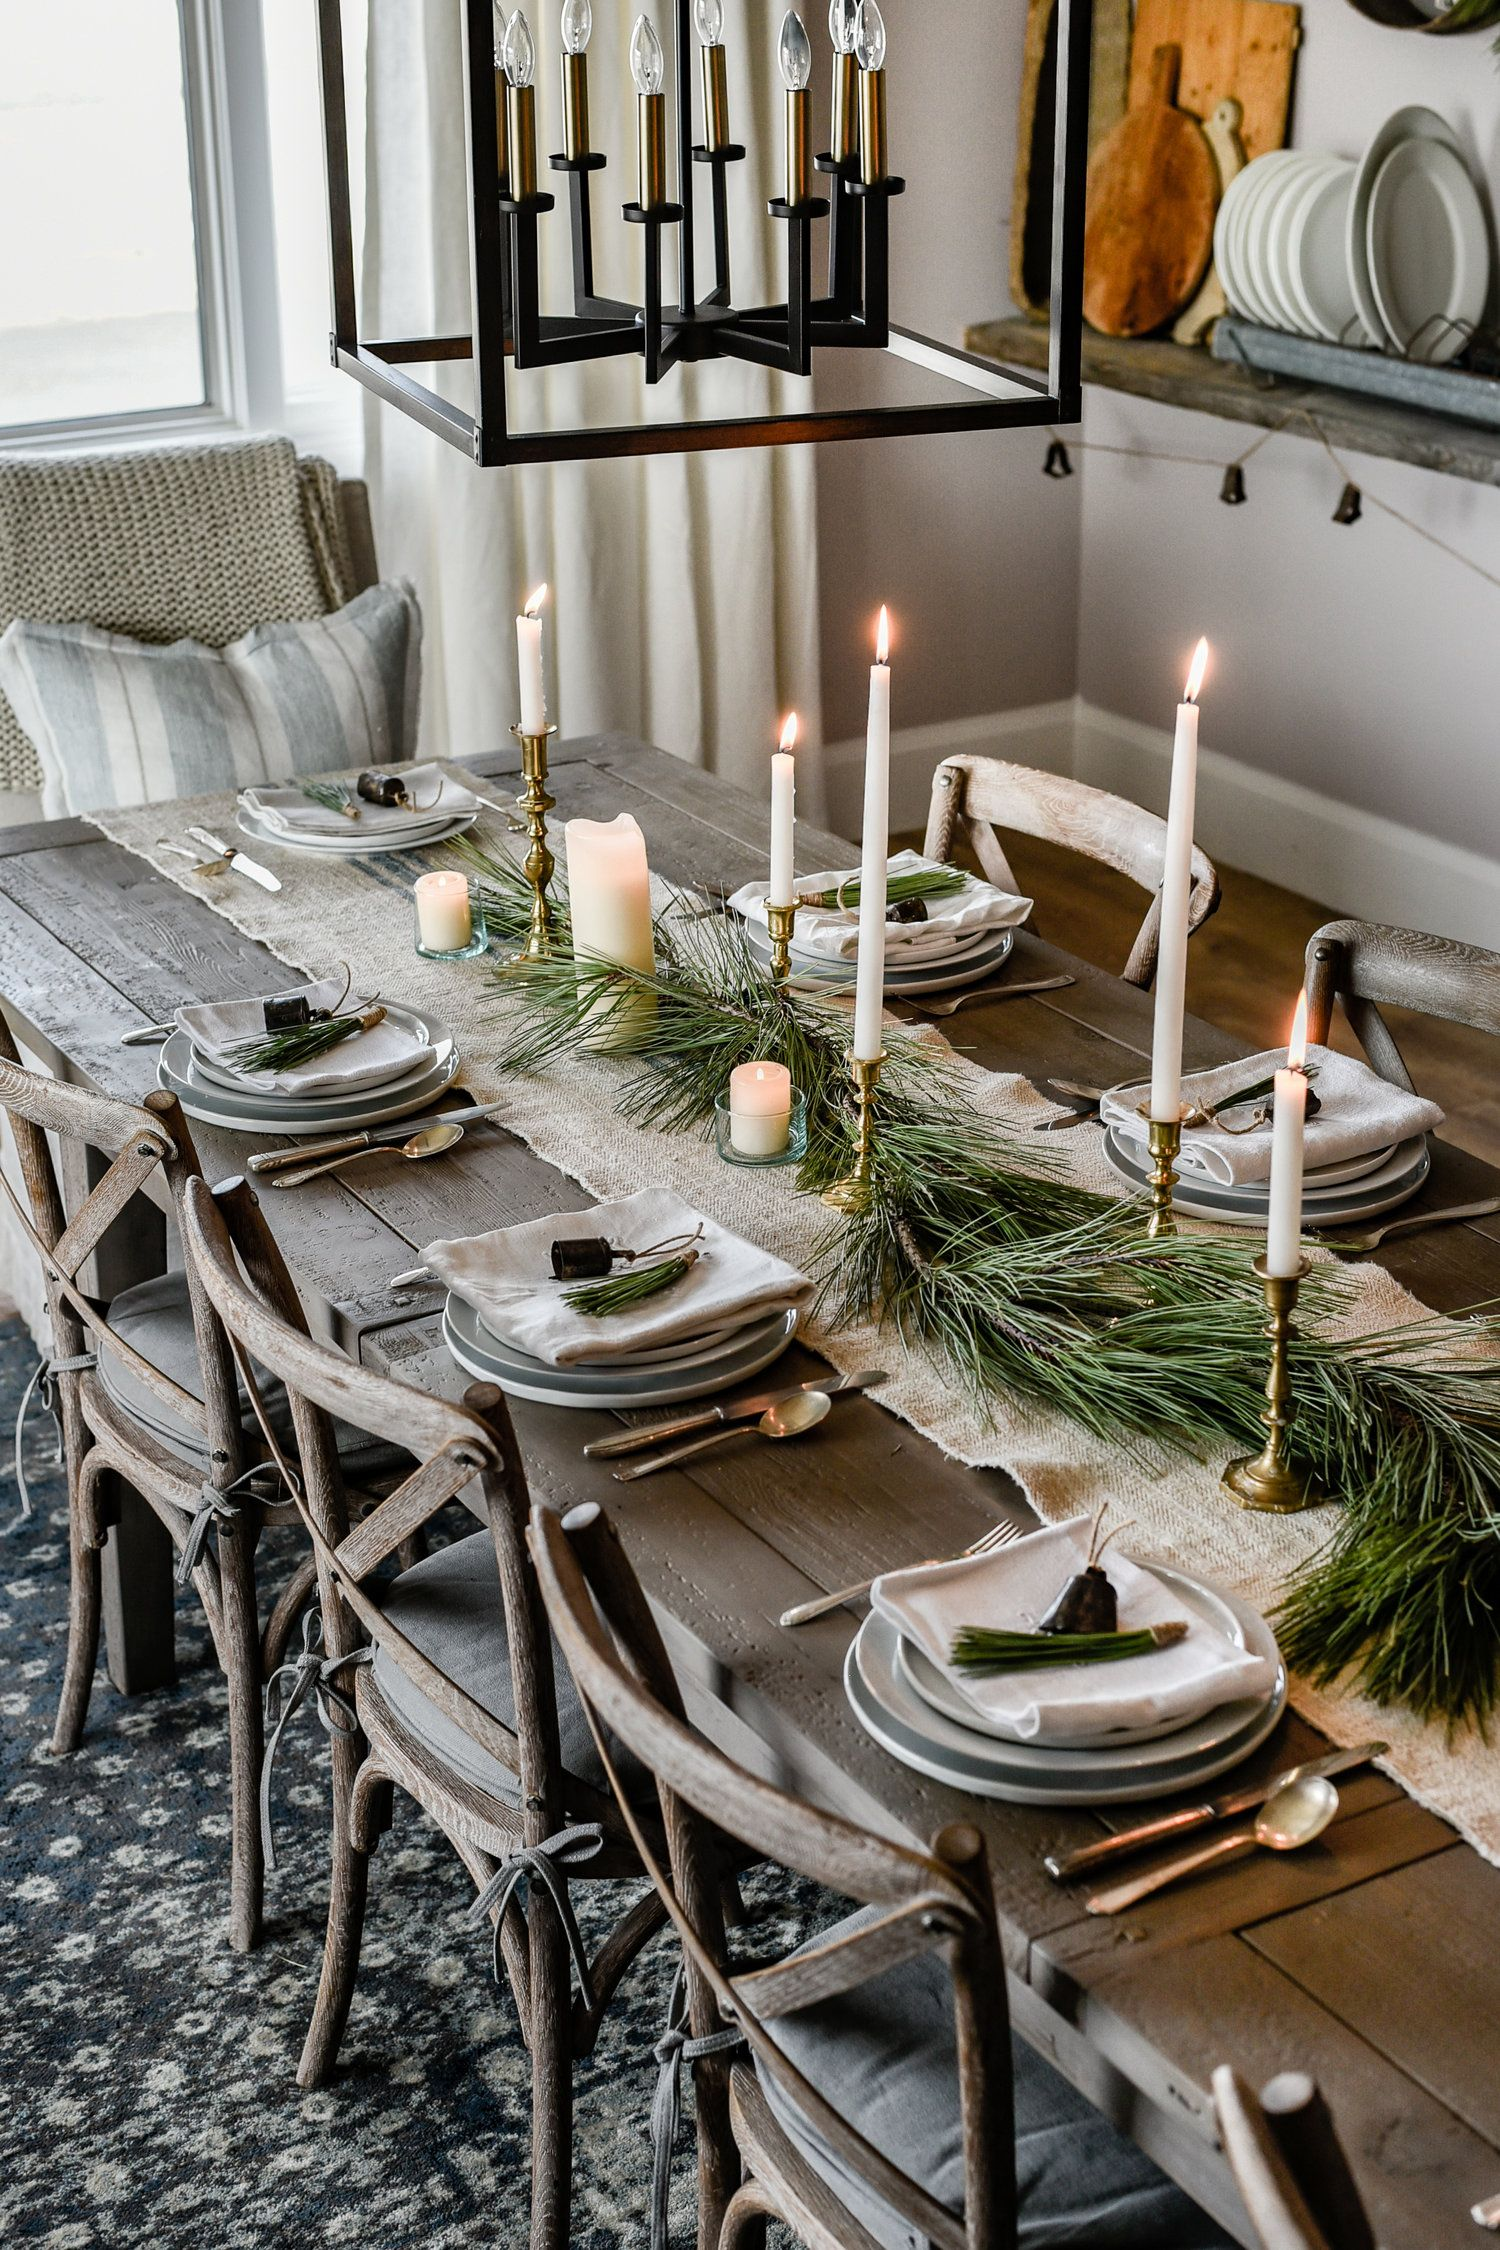 10 Beautiful Christmas Tablescapes To Inspire Your Holiday Decorating Christmas Decorations Rustic Christmas Table Settings Christmas Table Decorations